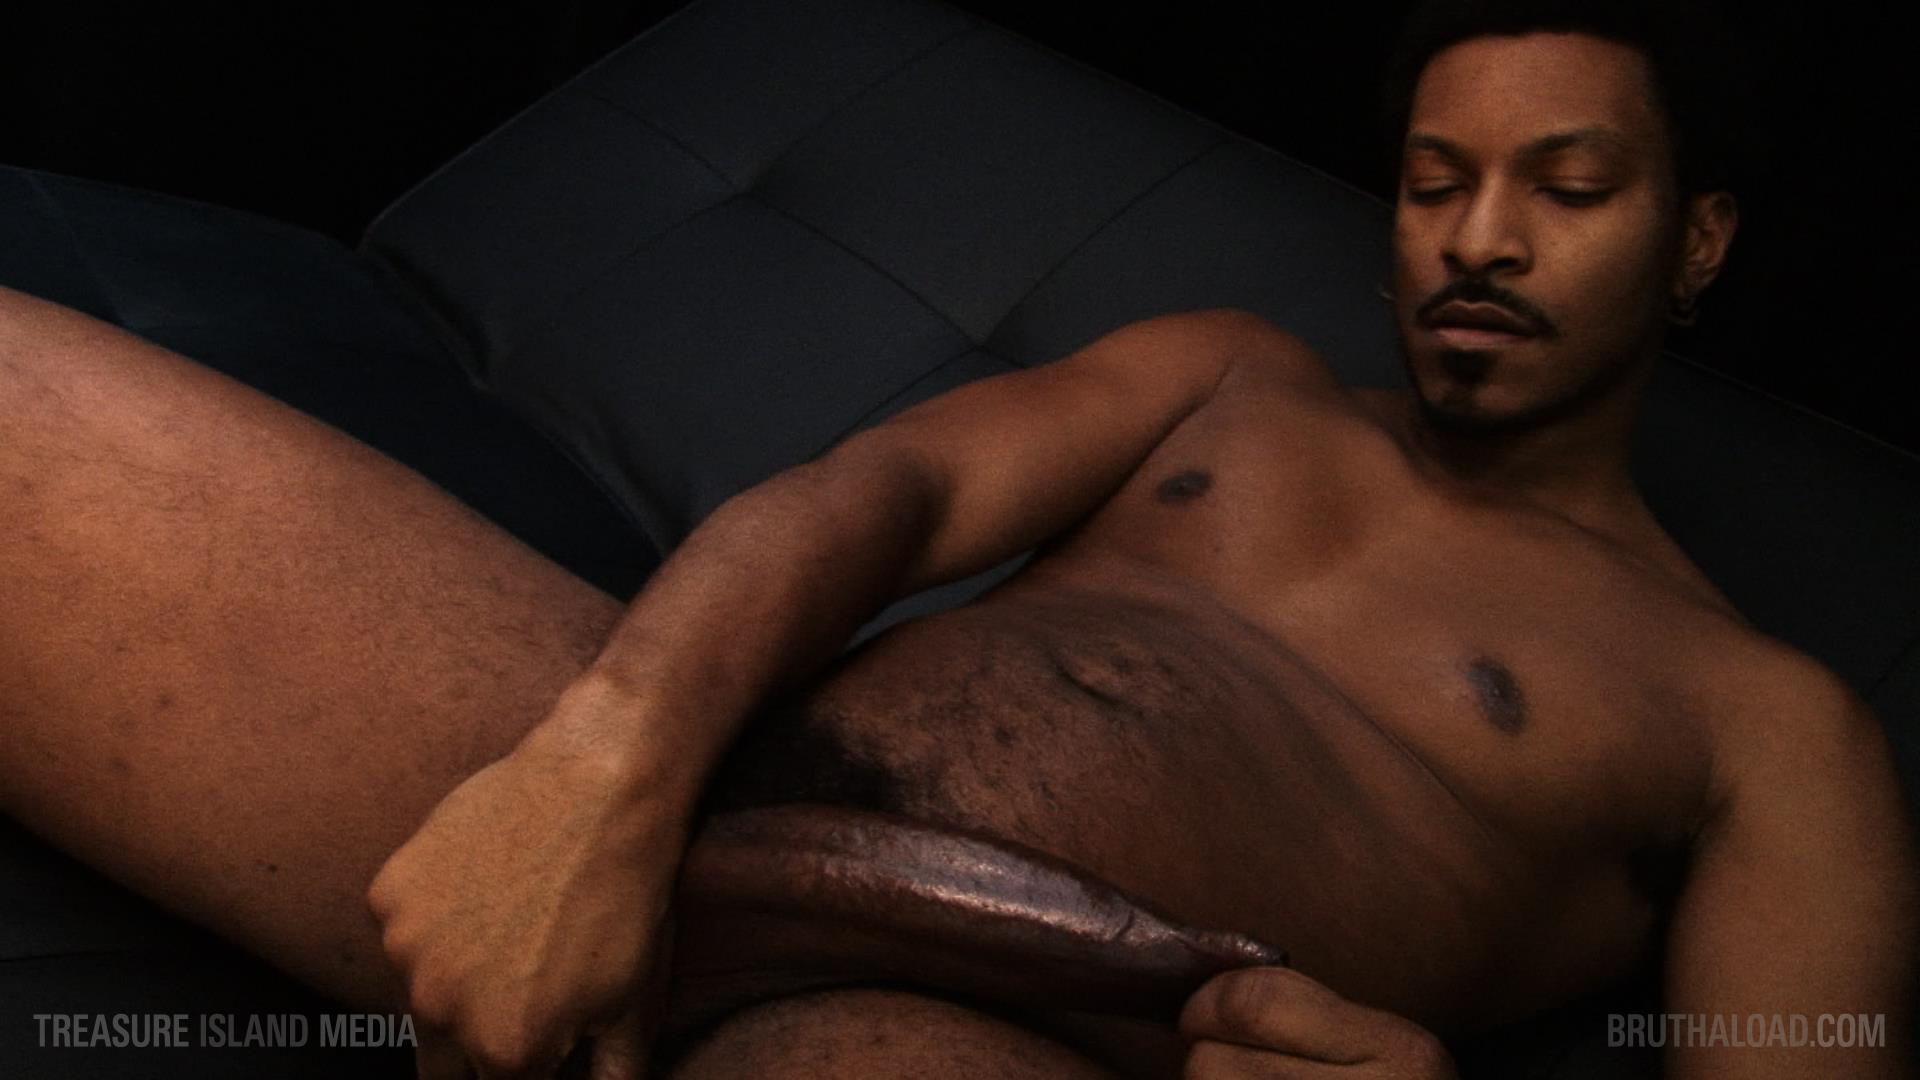 Treasure-Island-Media-Bruthaload-Devin-Masters-Big-Black-Uncut-Cock-14 Treasure Island Media's Bruthaload: Devin Masters Edging His Big Black Uncut Cock